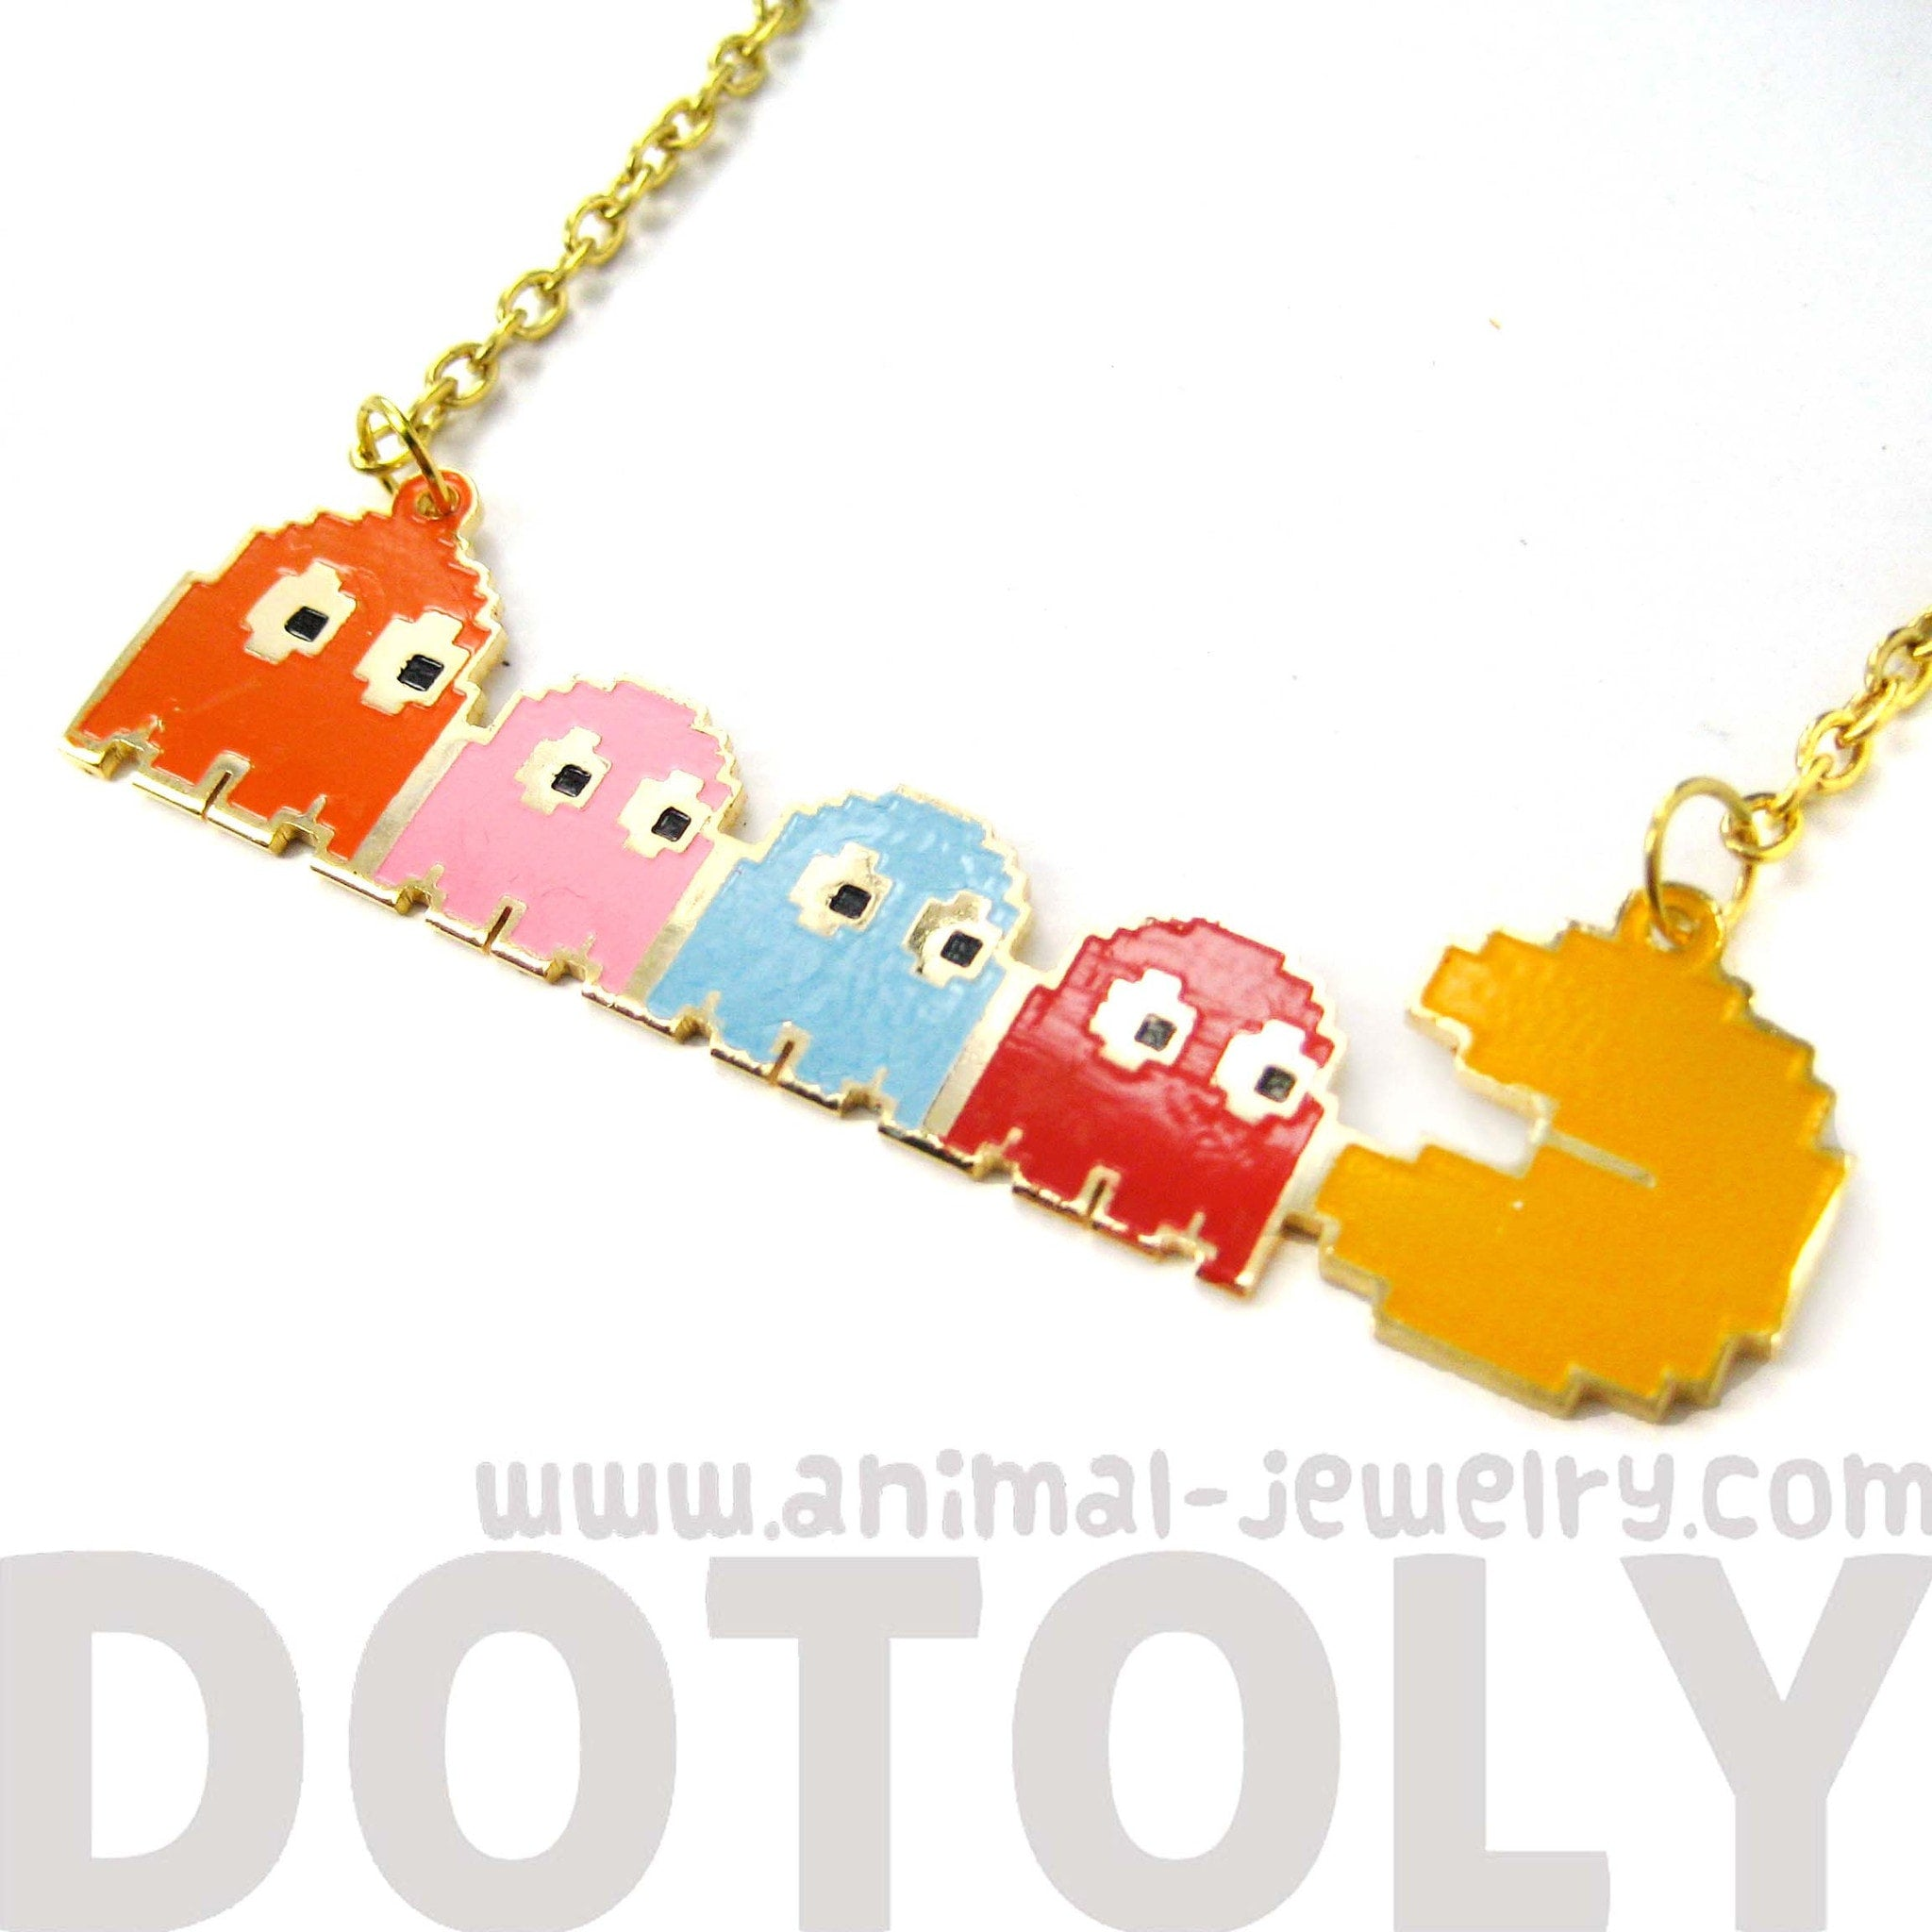 namco-pac-man-and-ghost-themed-pixel-pendant-necklace-limited-edition